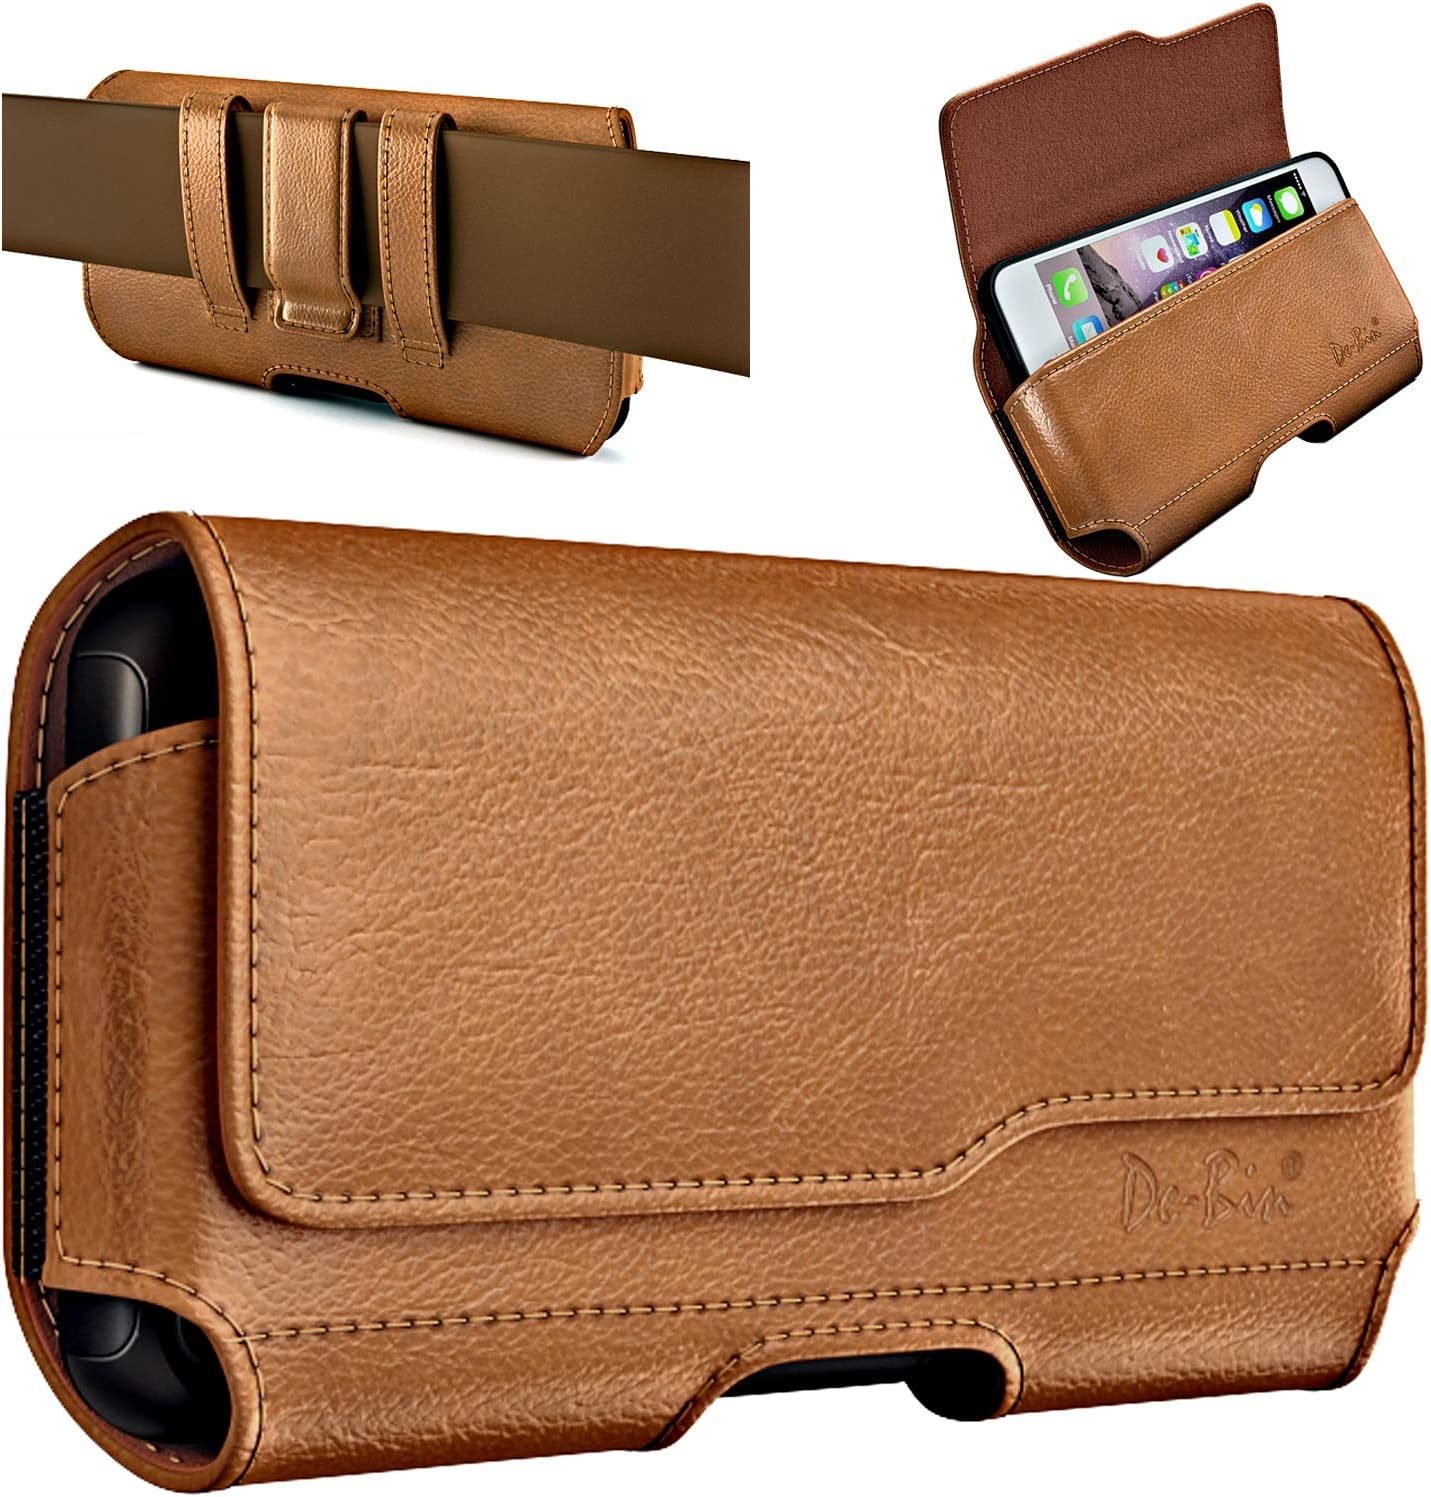 De-Bin Cell Phone Holsters Designed for Samsung Galaxy S20 Fe, S10+, S9+, S8+ Plus, A20 A30 A50 A51 Belt Case Cellphone Belt Holster Pouch with Belt Clip Pouch Fits Galaxy with Thin Case on-Brown